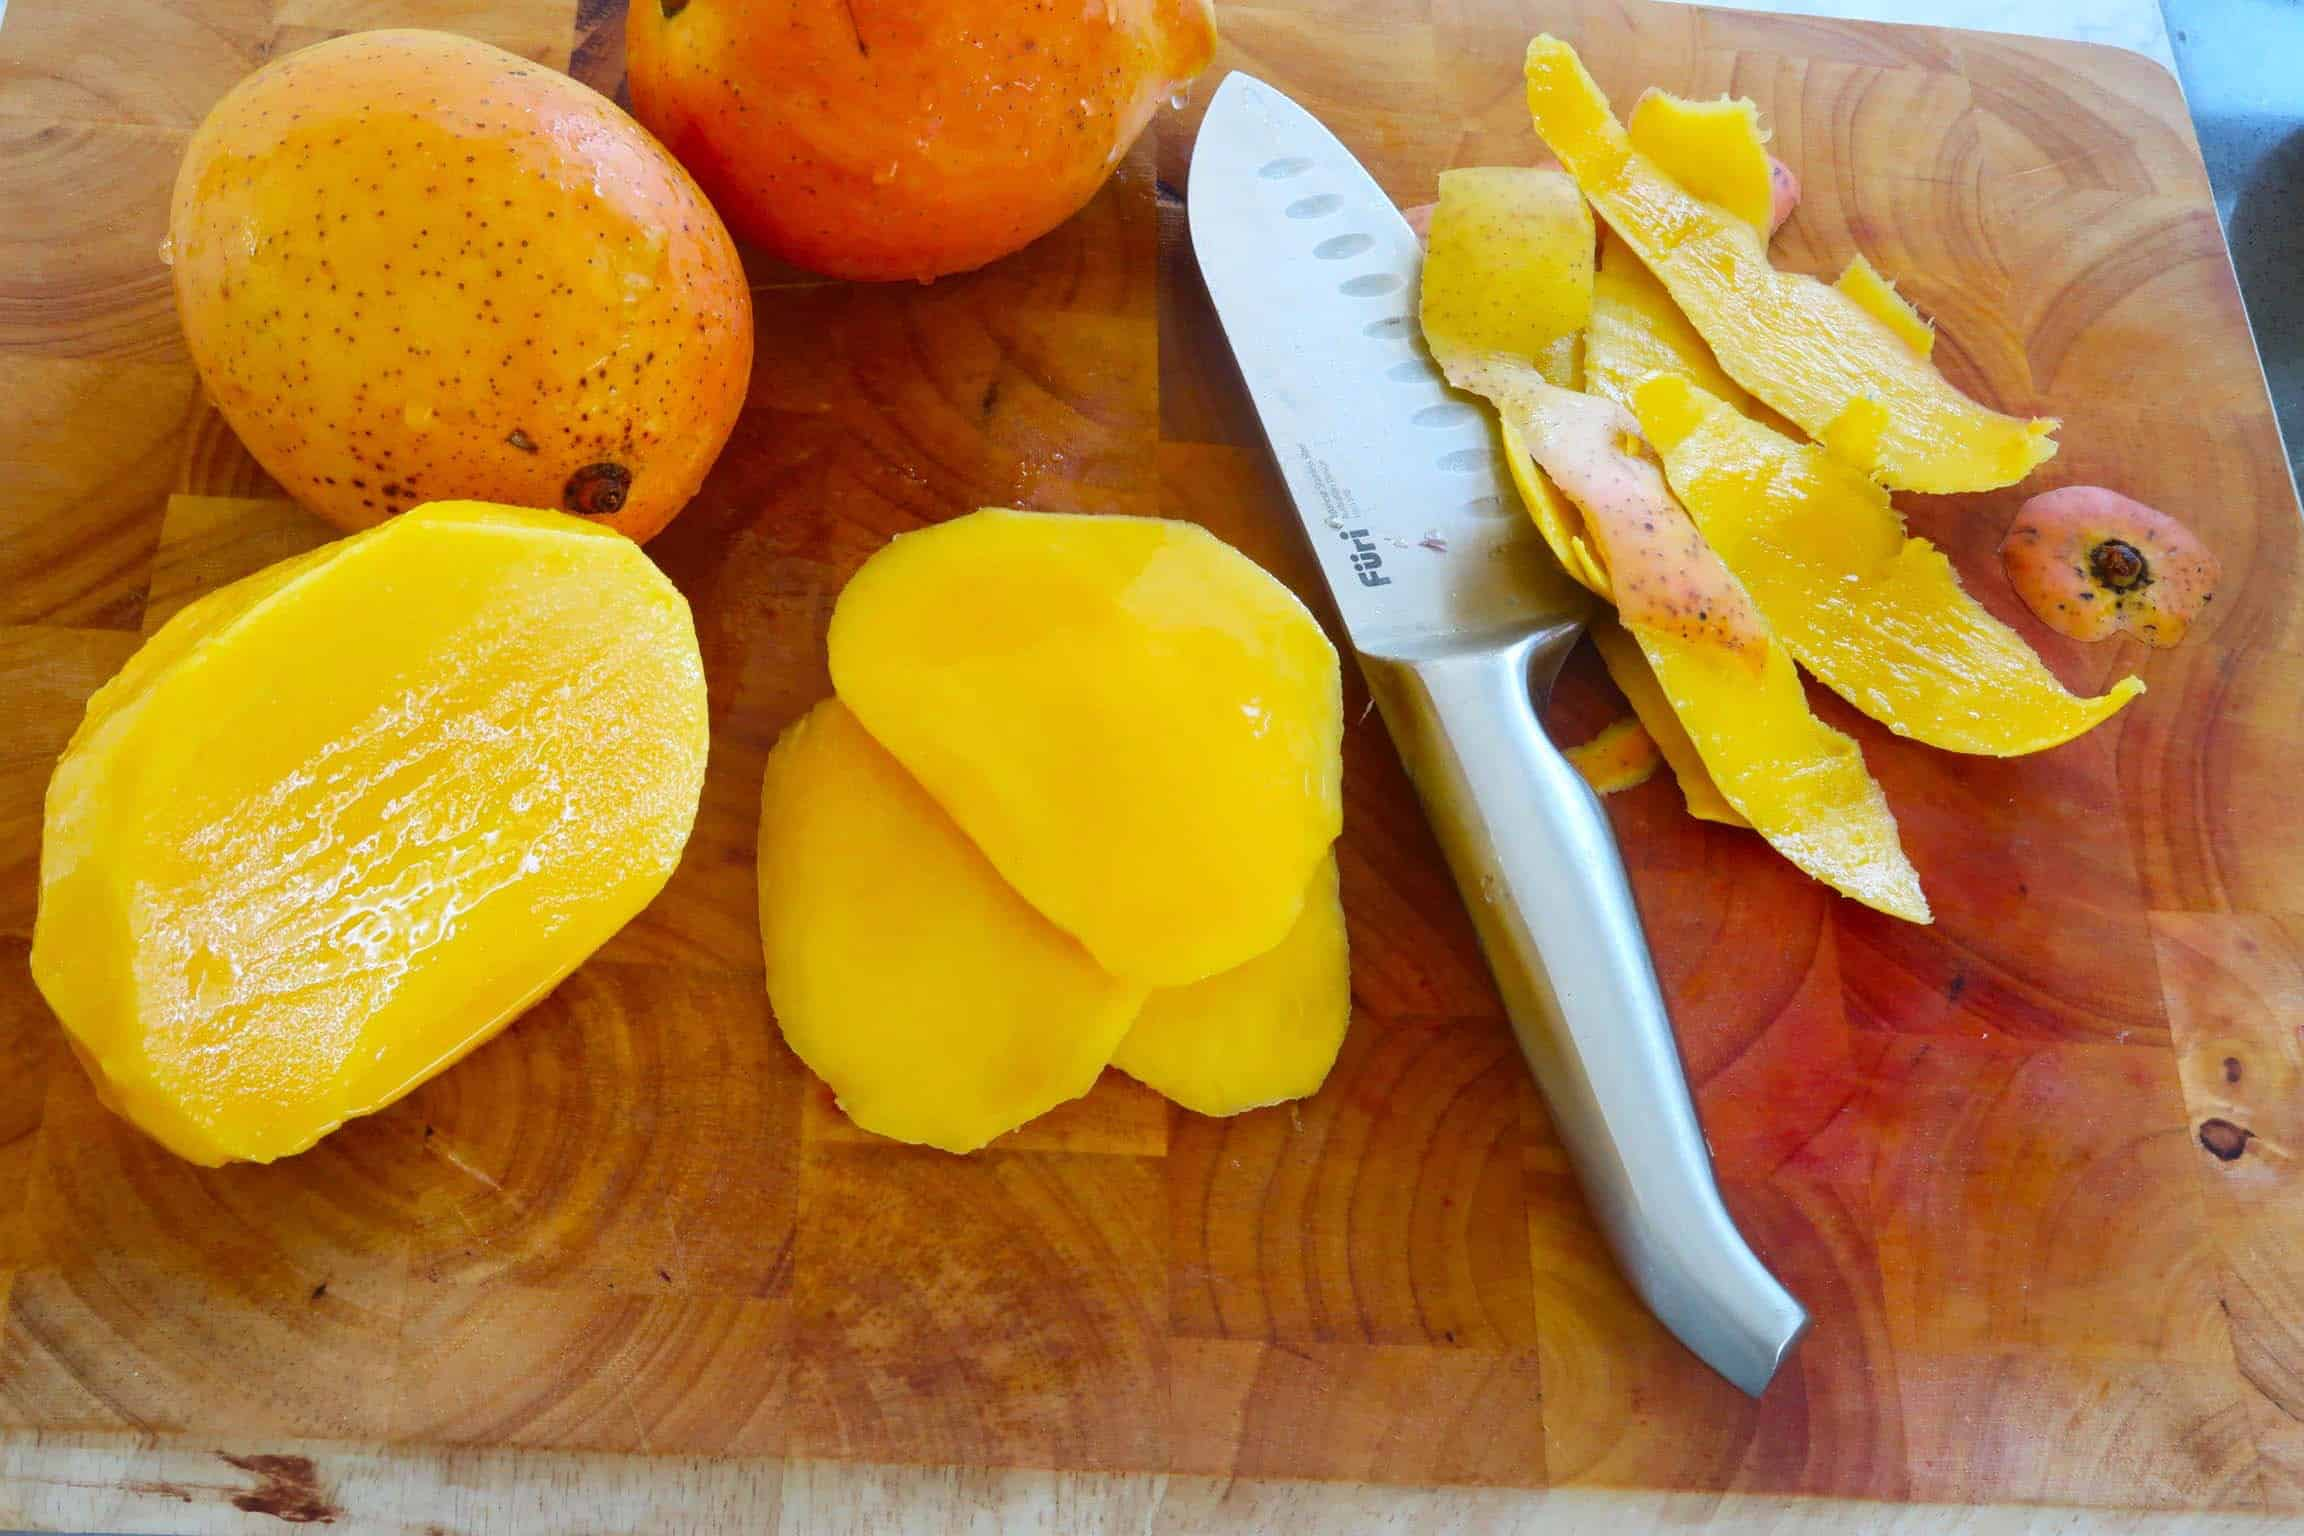 mango and red onion salad slicing and peeling mangoes on a wooden chopping board with a knife